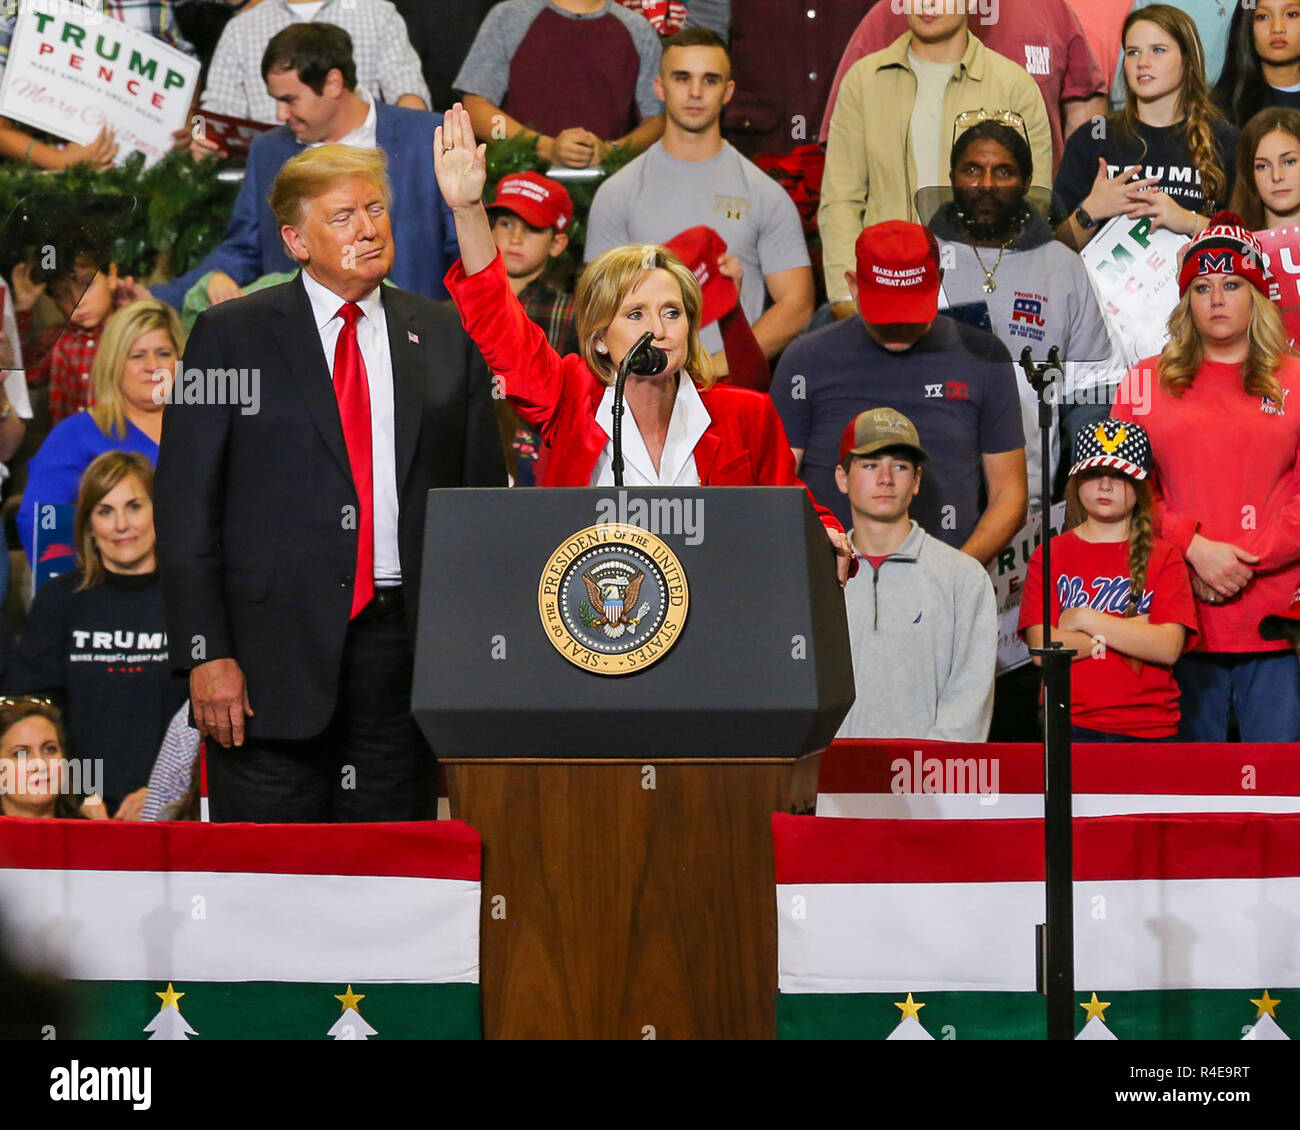 Biloxi, Mississippi, USA. 26th Nov, 2018. President Donald Trump in Biloxi, Mississippi. for rally in support of Sen. Cindy Hyde-Smith. The run-off election against Mike Espy for the U.S. Senate in Mississippi on November 27, 2018. Credit: Tom Pumphret/Alamy Live News - Stock Image